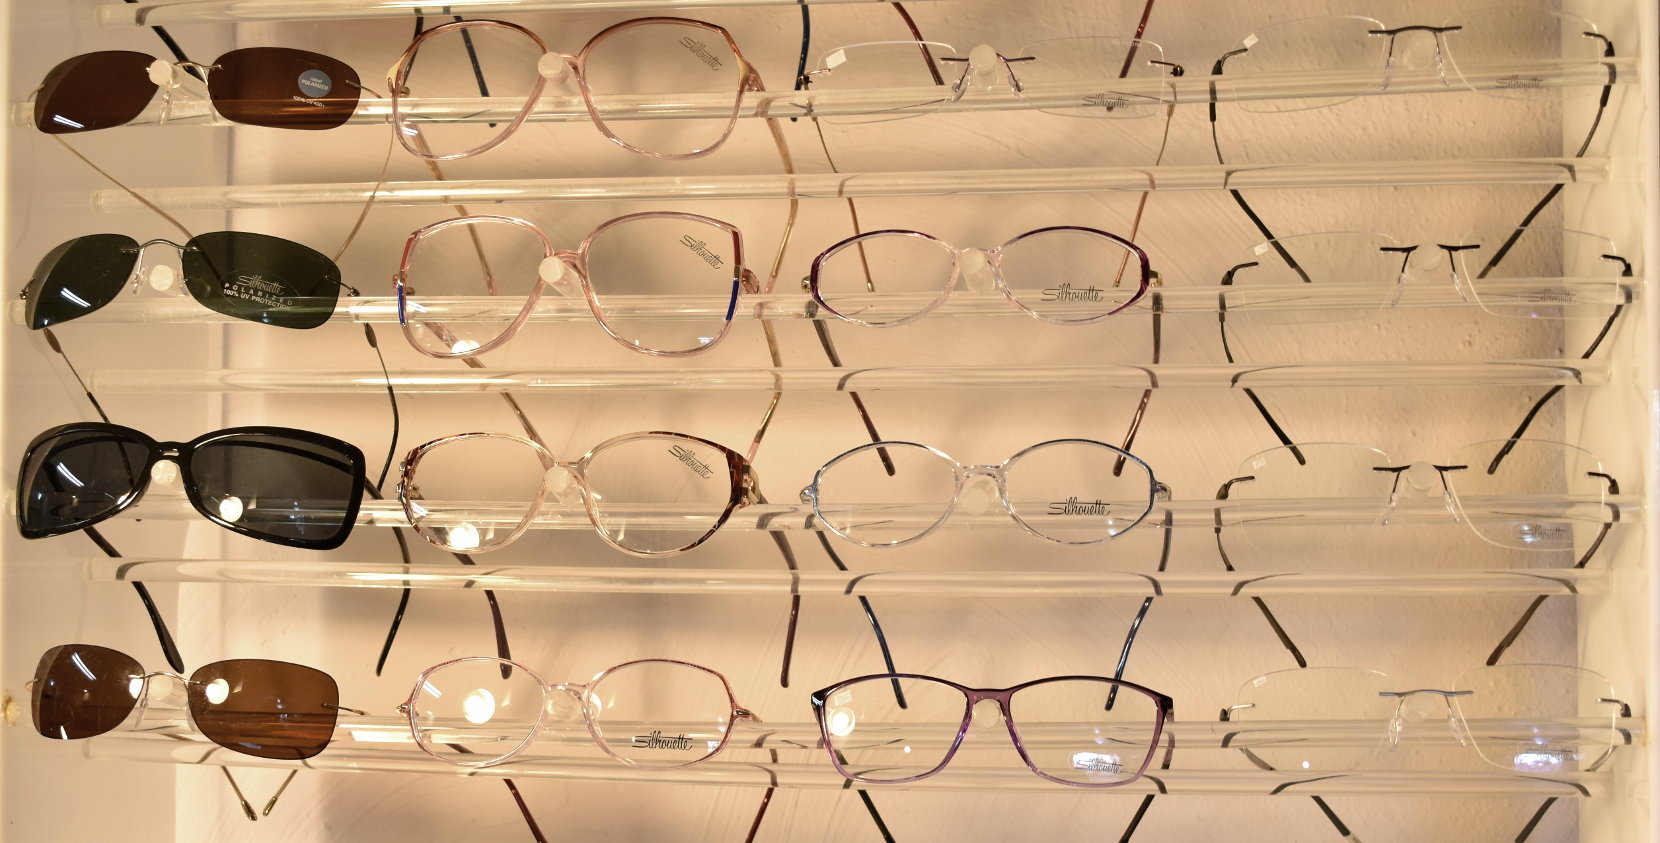 Eyewear display